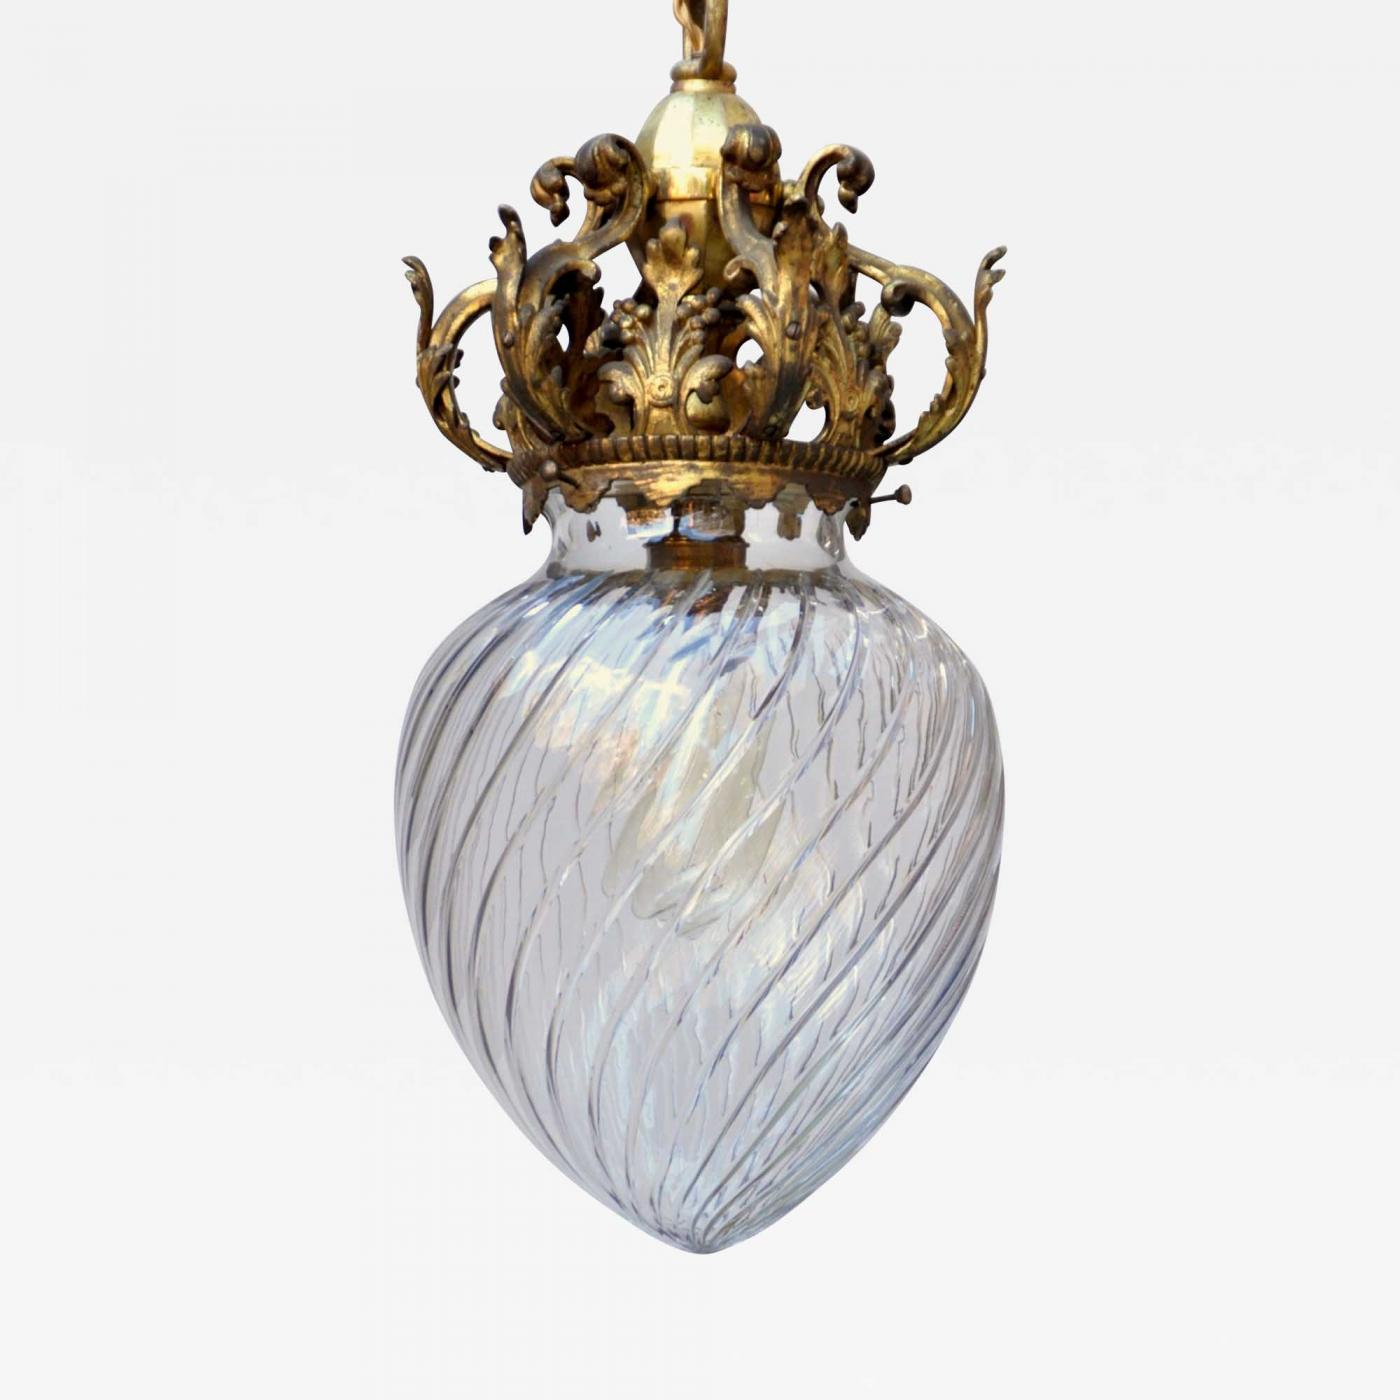 Early 20th c. Cut Crystal Pendant Lamp Image